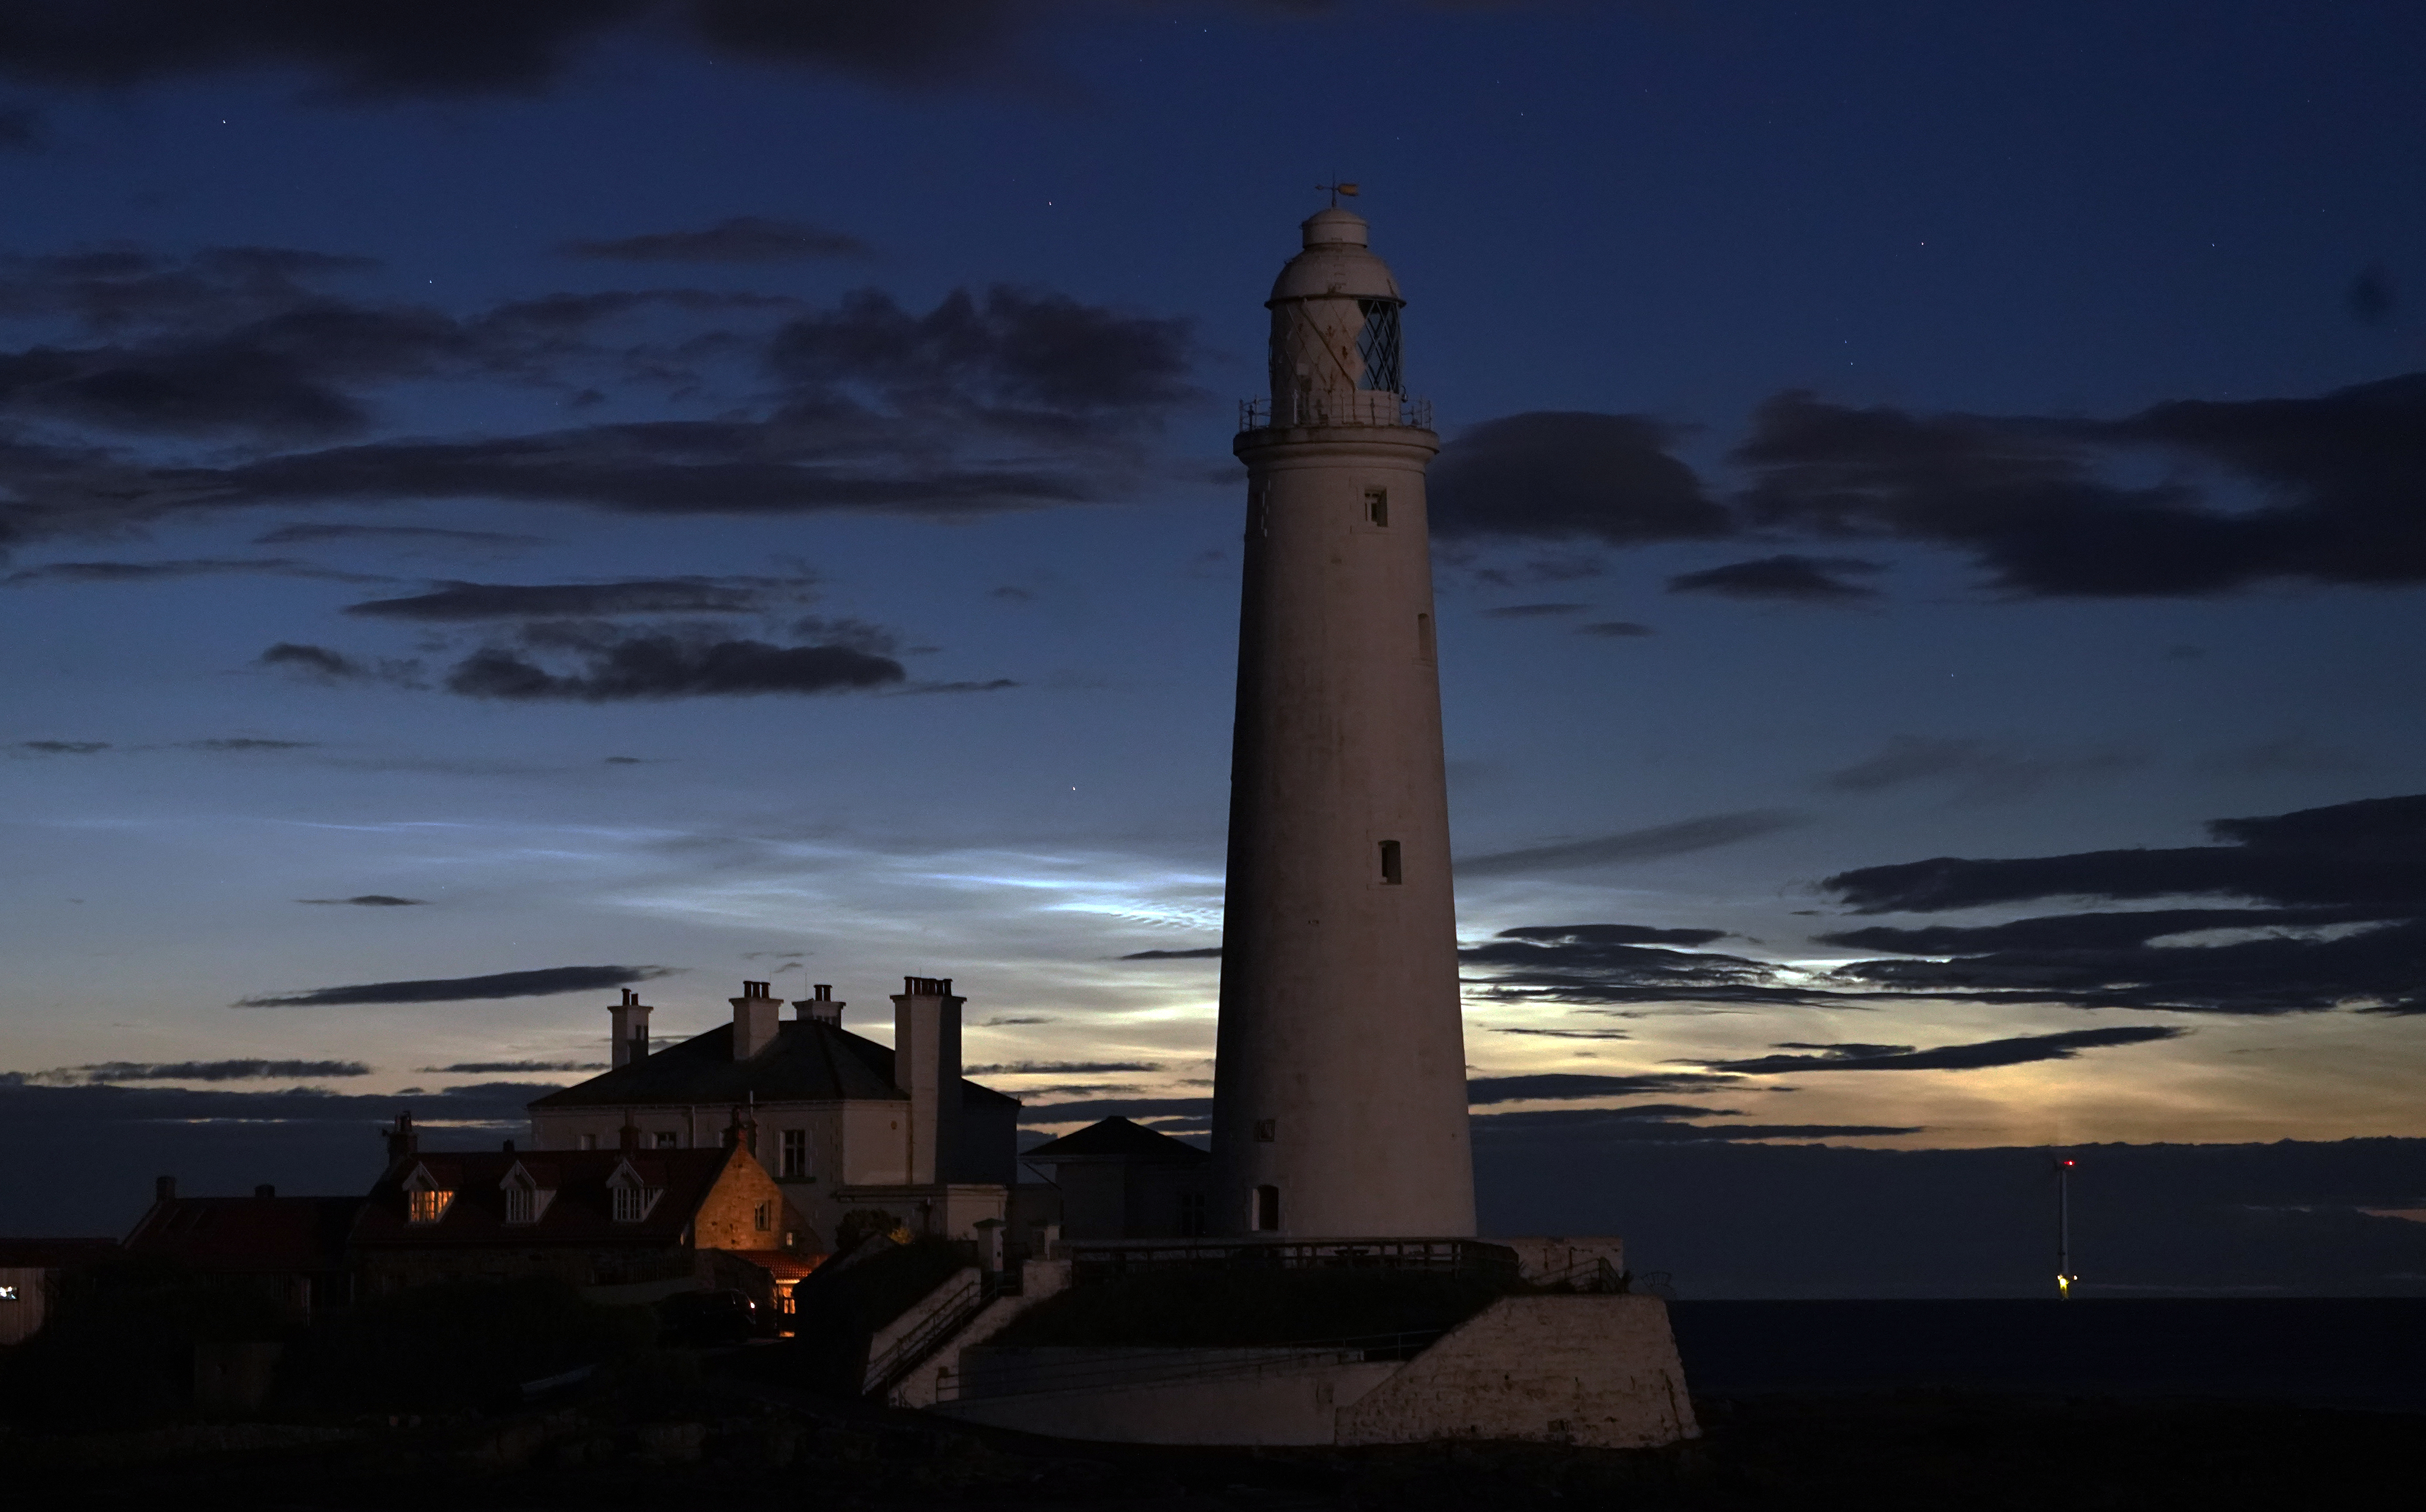 Noctilucent clouds or night clouds forming behind St Mary's Lighthouse in Whitley Bay. The clouds appear when the sun is 6-16 degrees below the Horizon. (Photo by Owen Humphreys/PA Images via Getty Images)